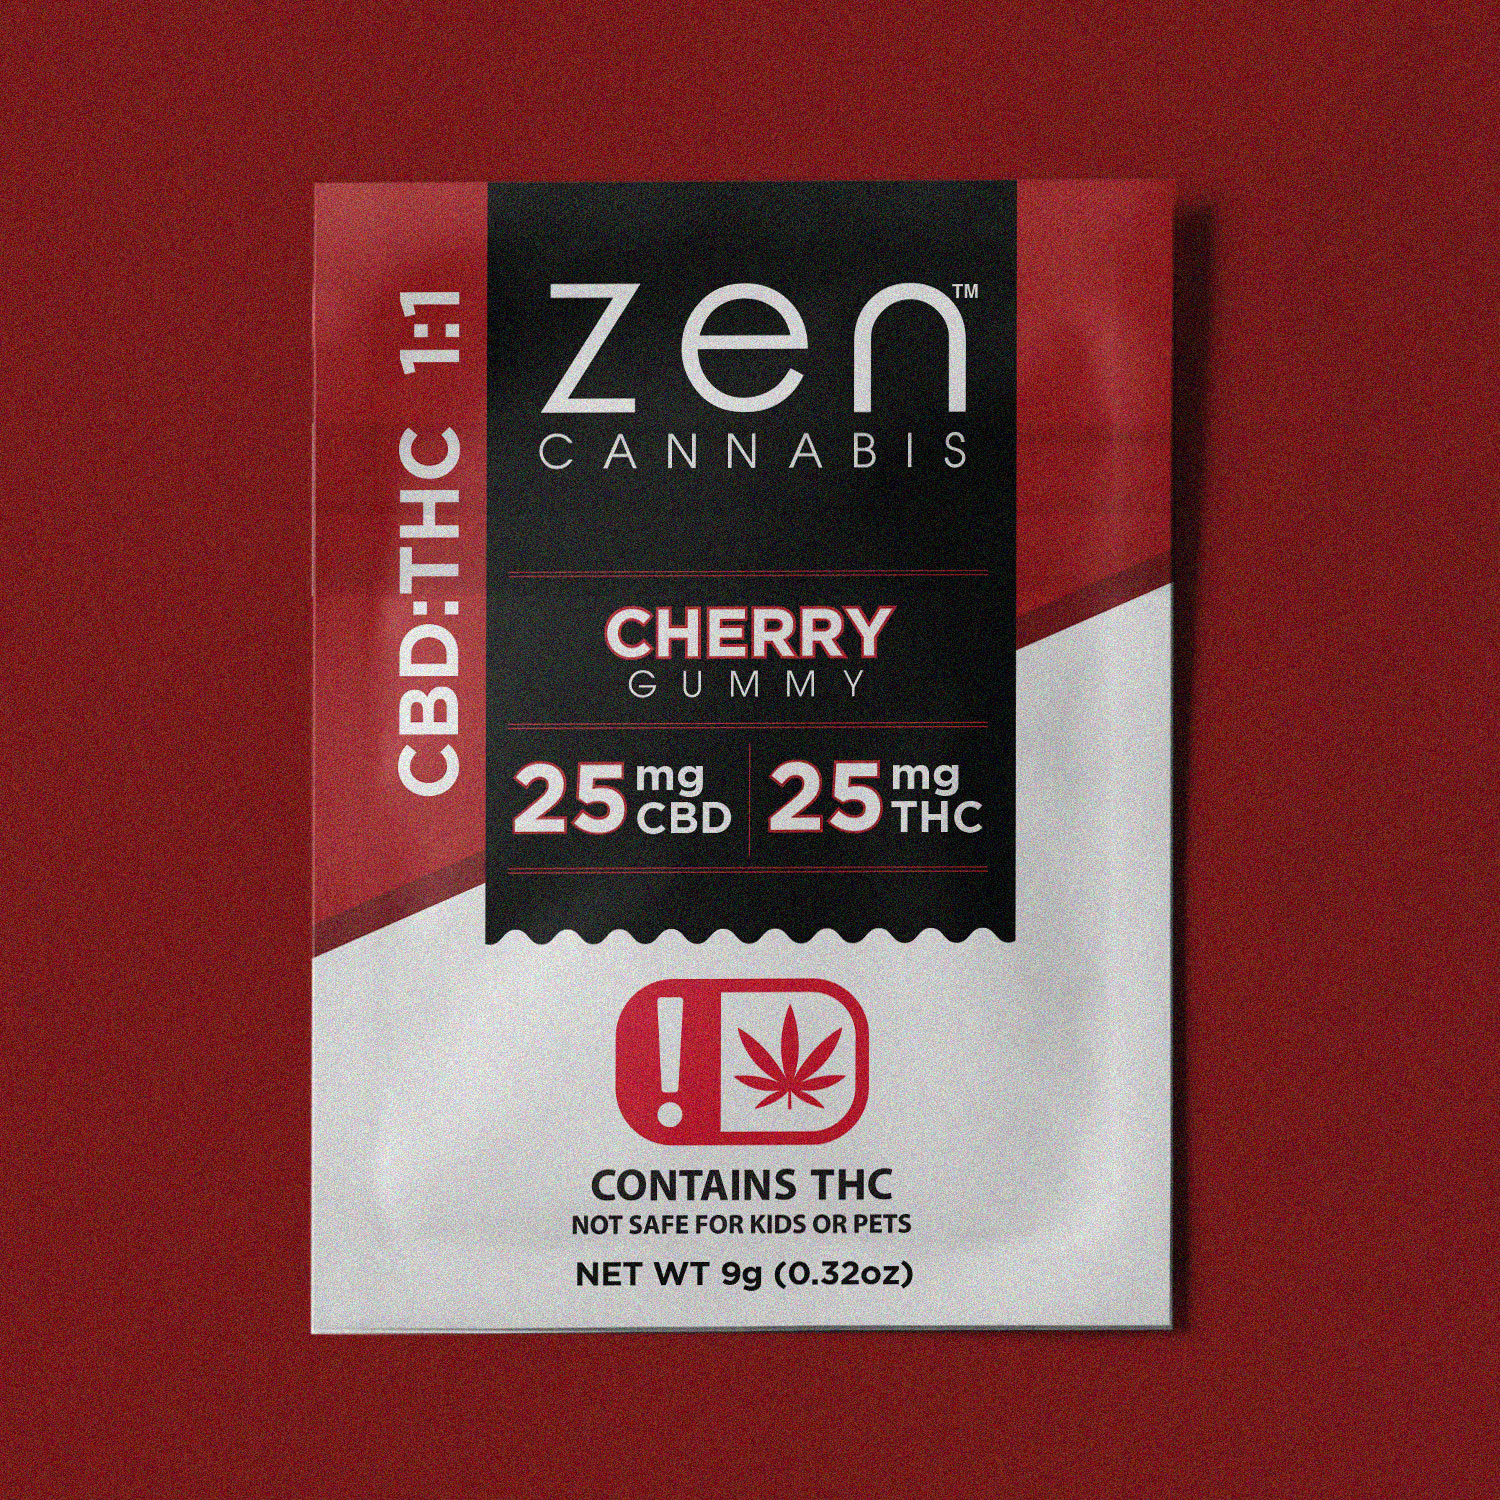 CBD:THC | 1:1 A rush of rich and bold cherry flavor to soothe your body and mind. Contains 25mg THC and 25mg CBD. Gluten